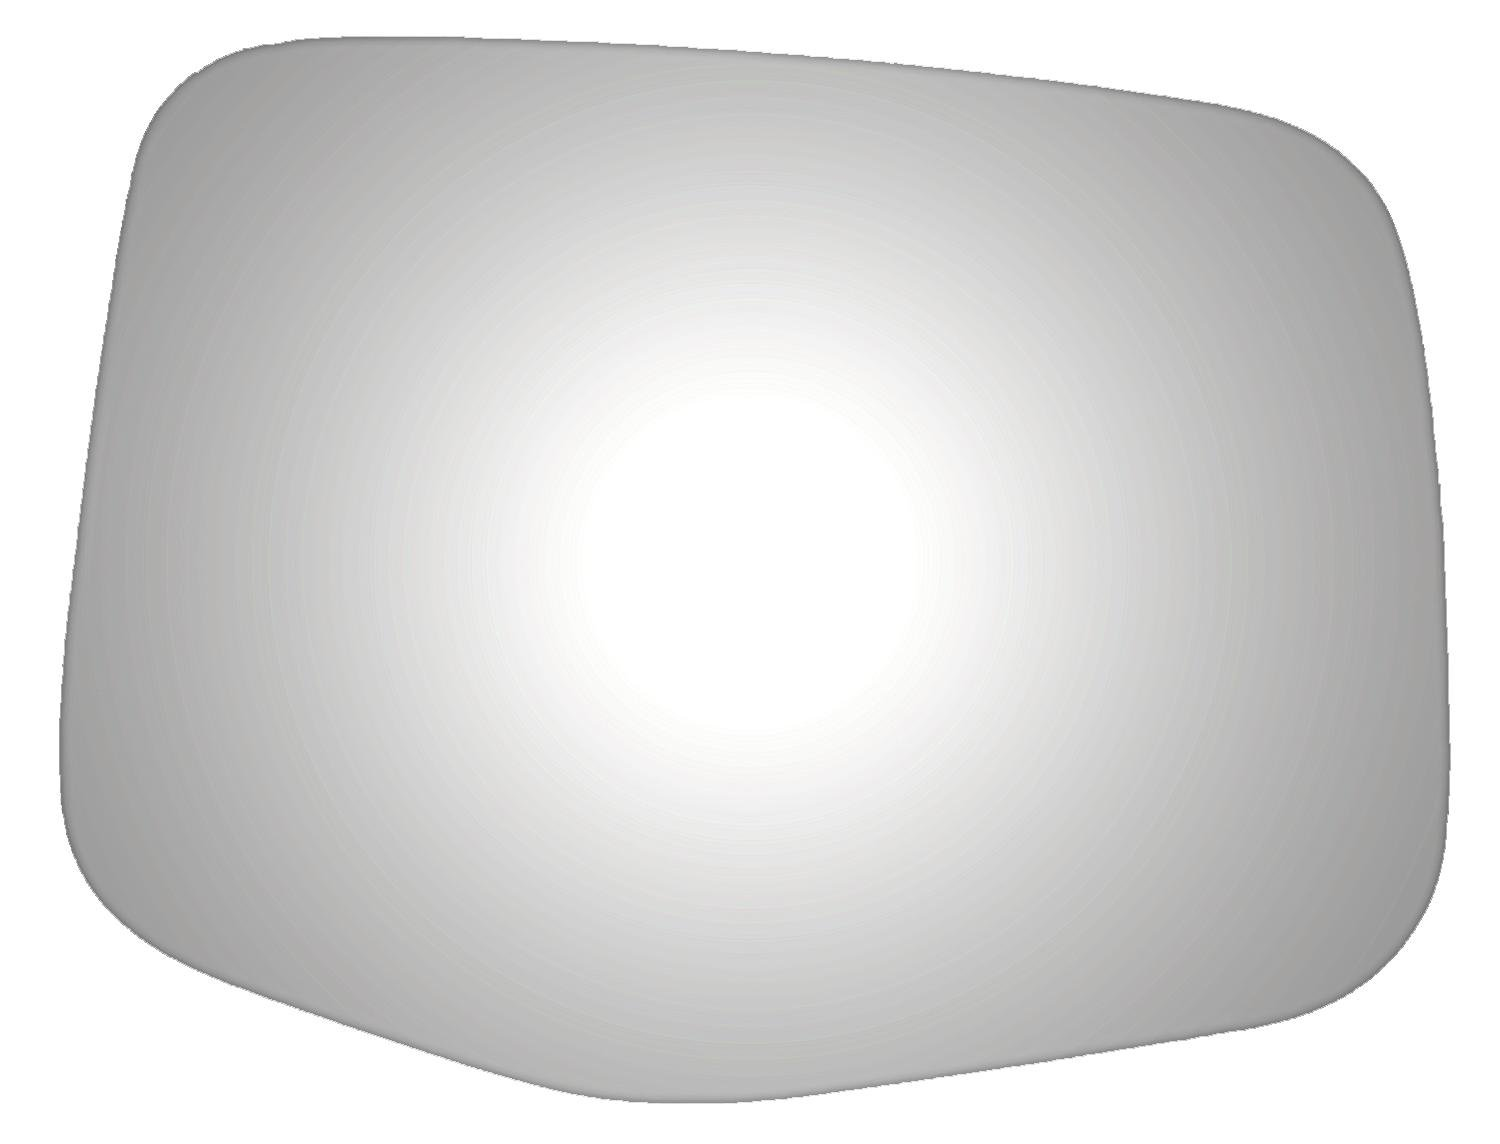 2011-2013 HONDA ODYSSEY Convex Passenger Side Replacement Mirror Glass Burco